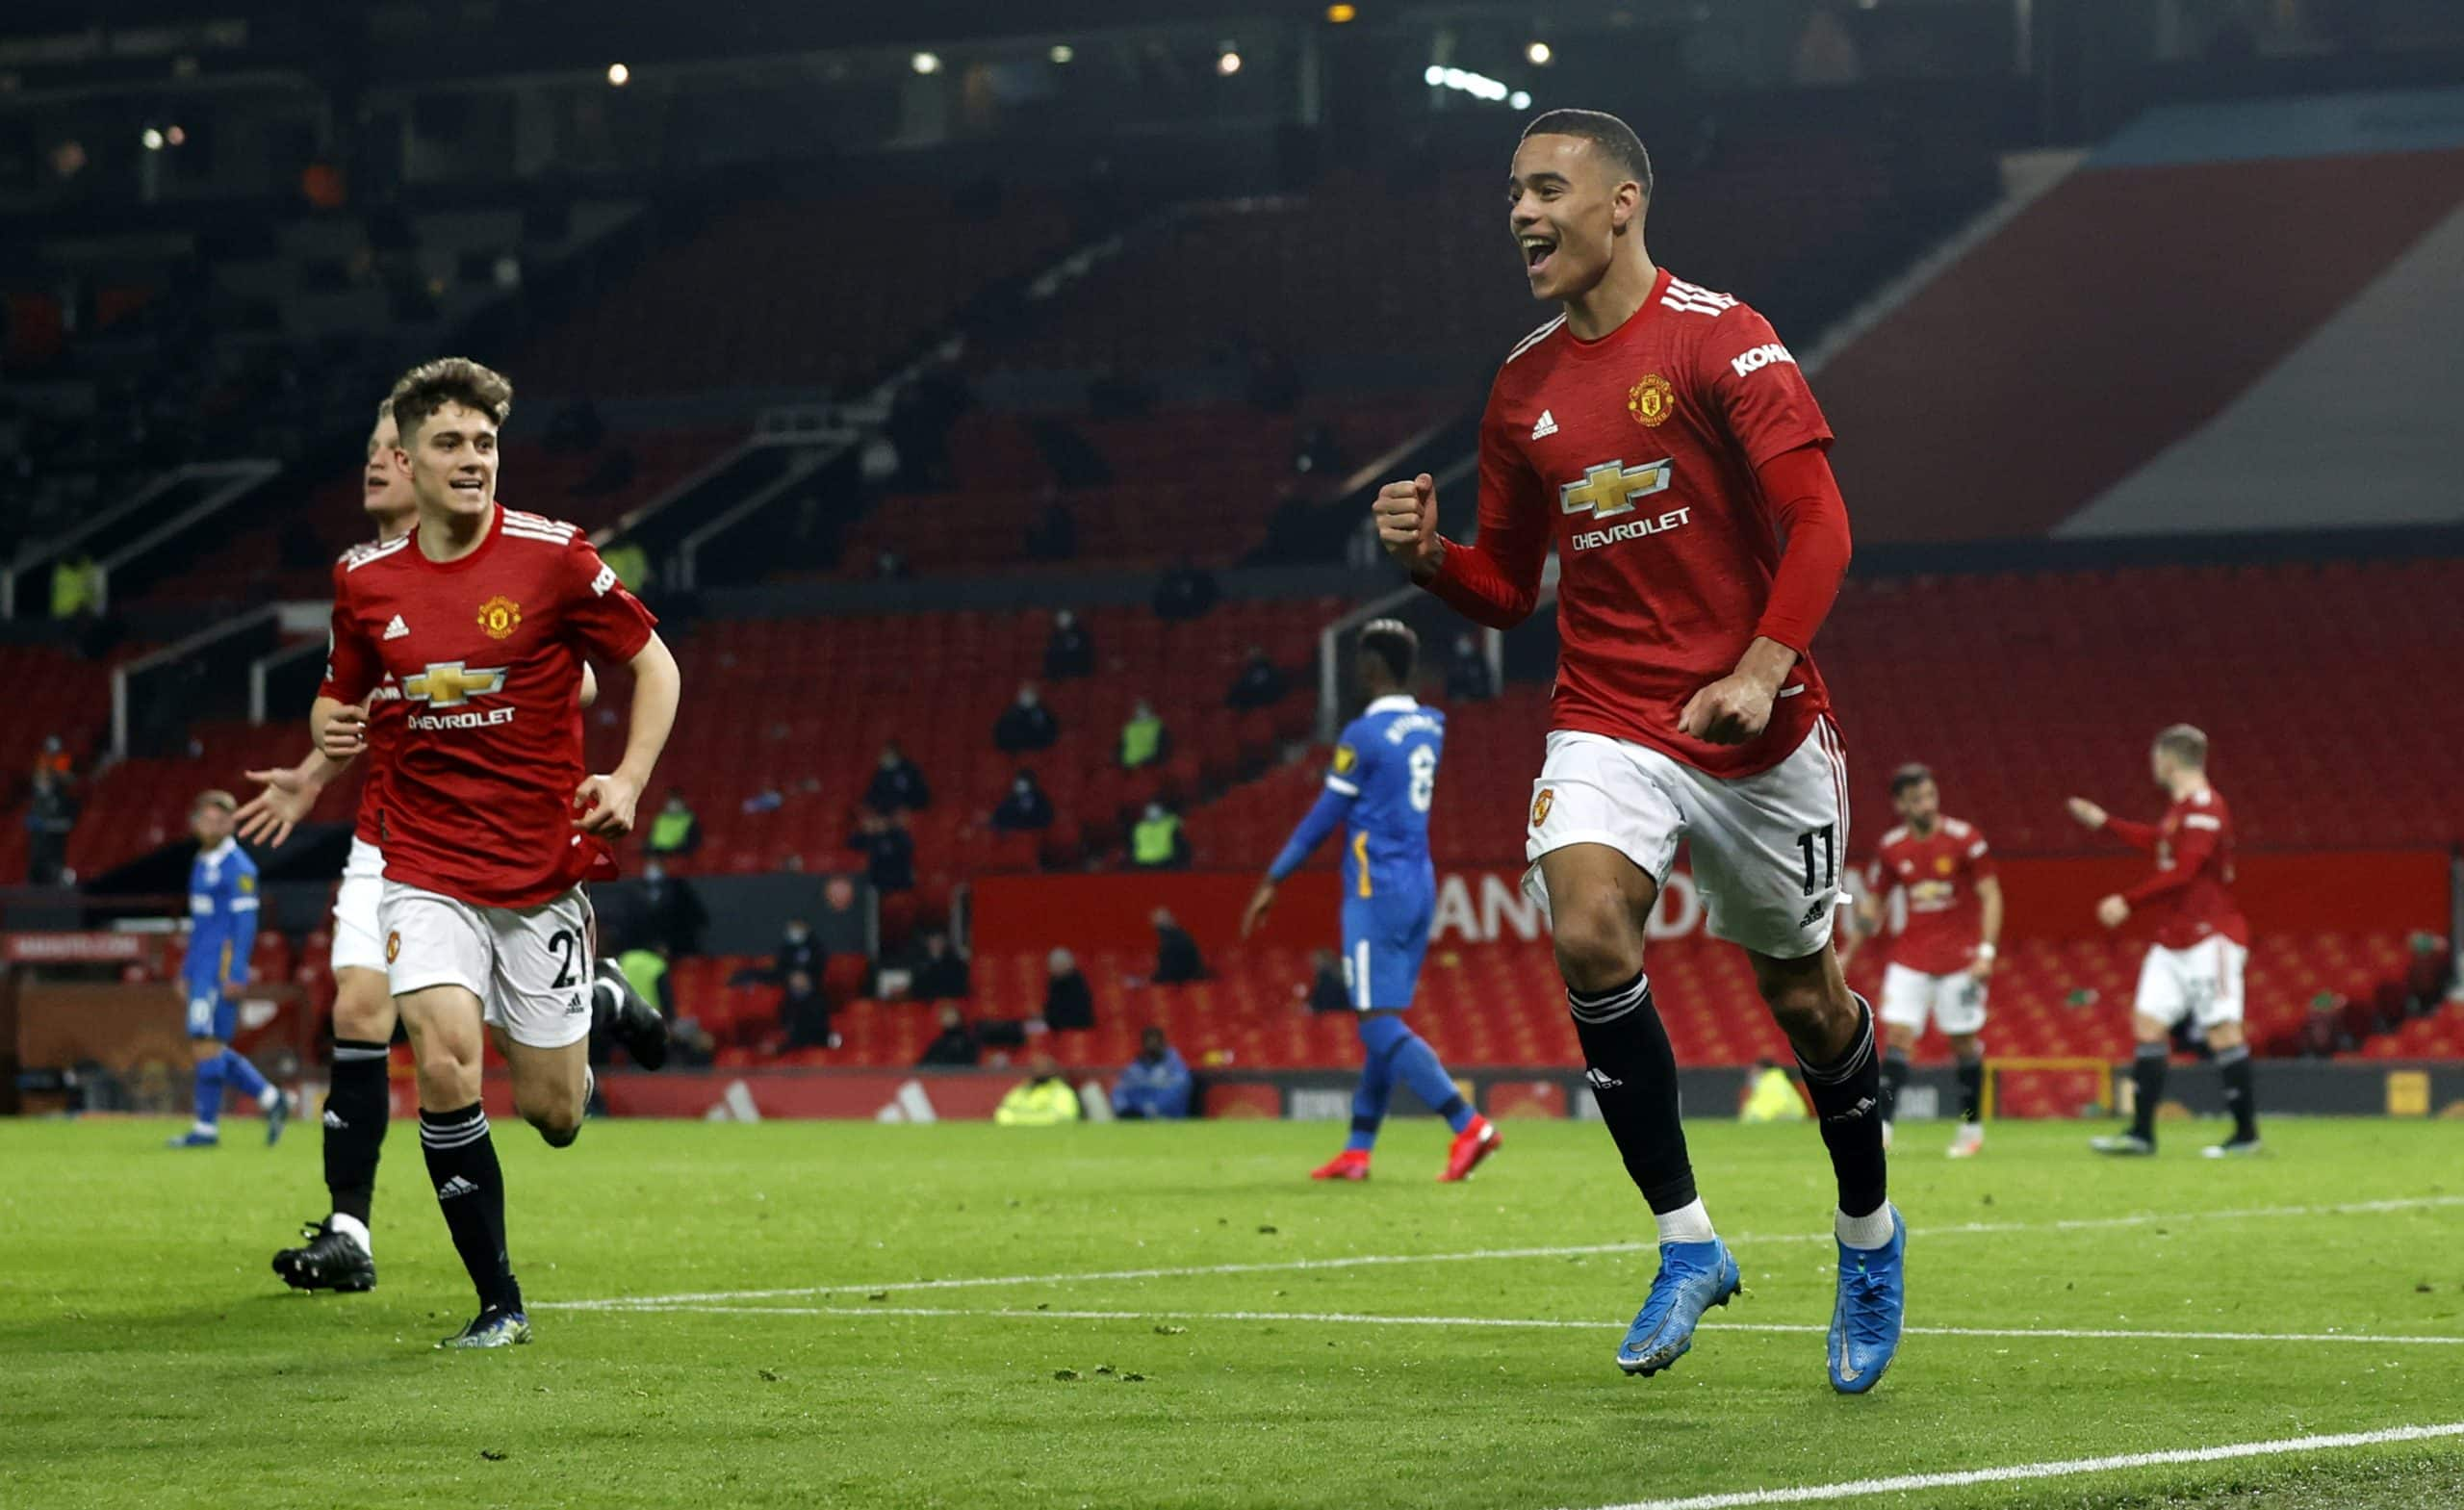 AS Roma vs Manchester United betting tips: Preview, predictions & odds